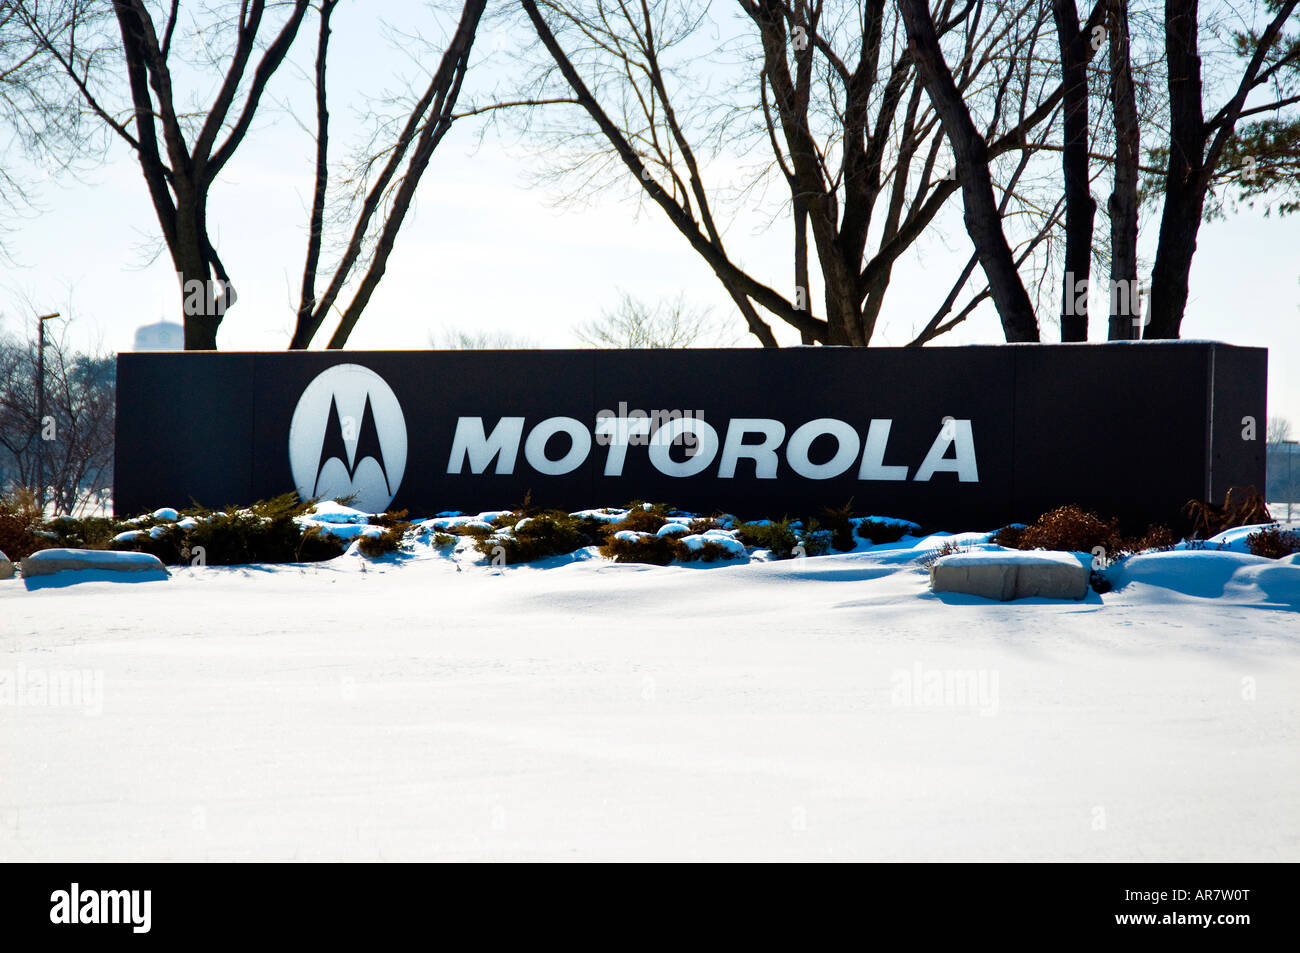 Motorola Sign Stock Photos & Motorola Sign Stock Images - Alamy